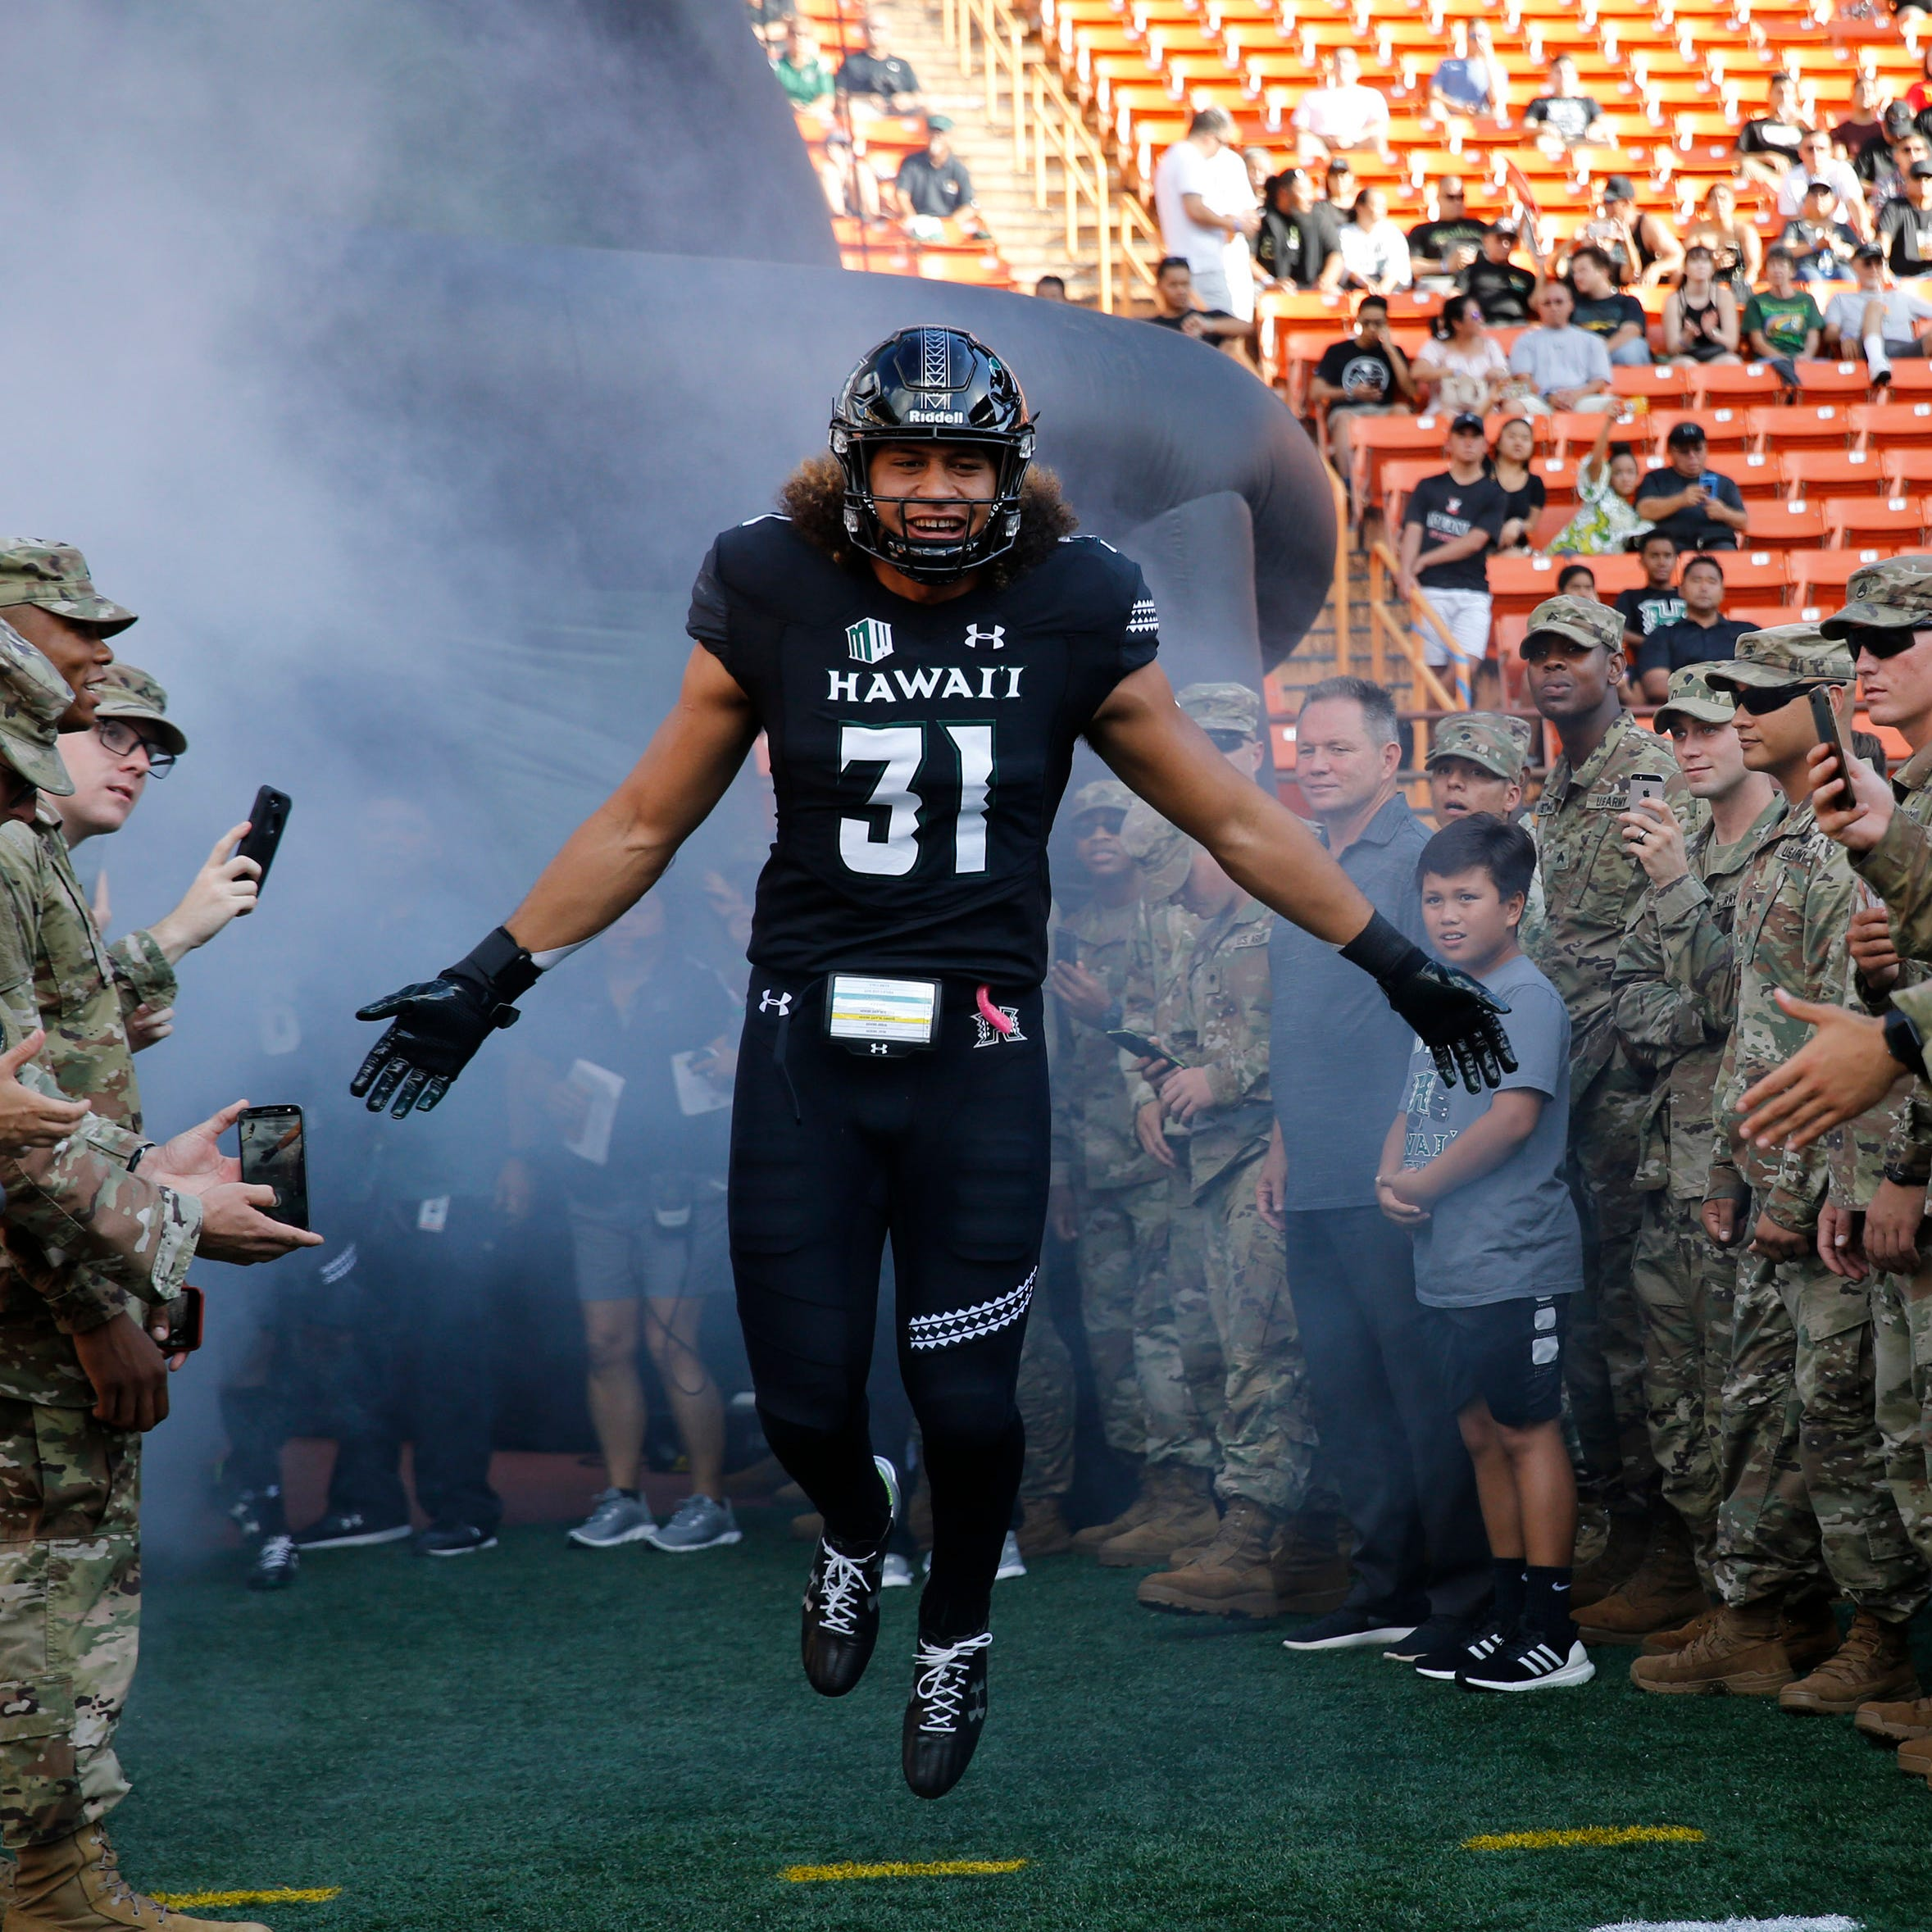 Hawaii LB coach: Detroit Lions pick Jahlani Tavai a 'plug-and-play' contributor